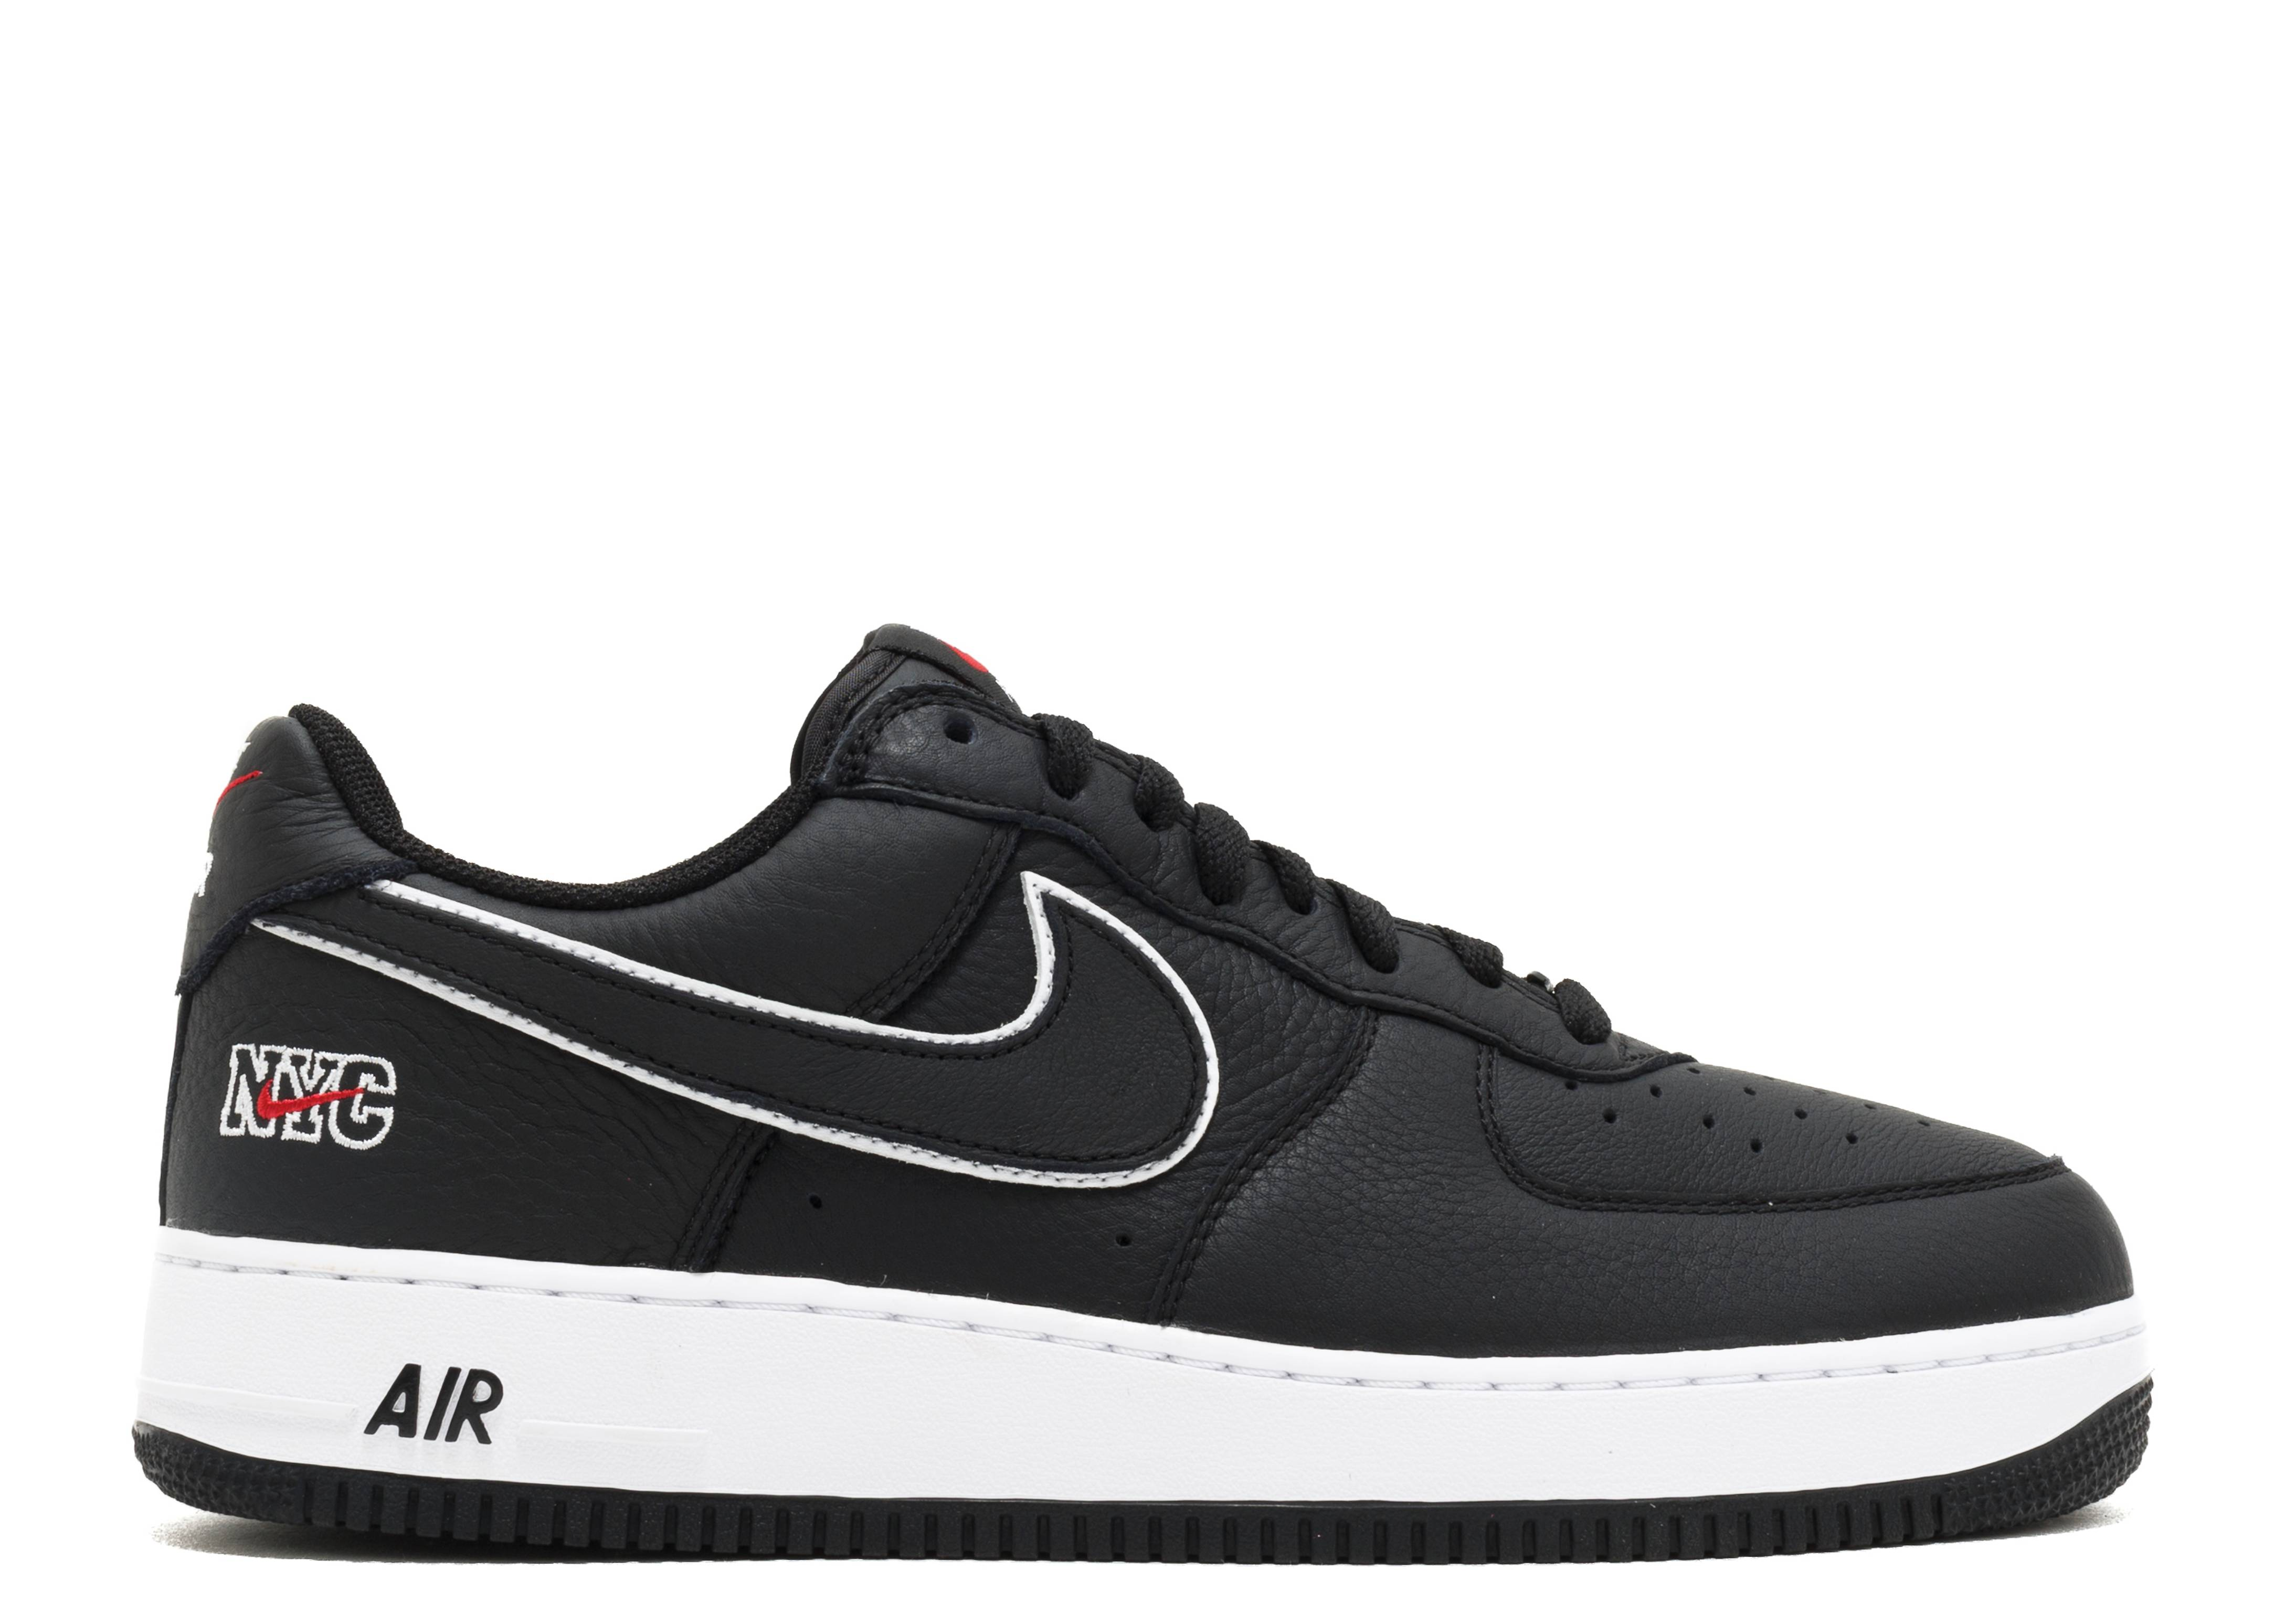 Air Force 1 Low Retro 'NYC'